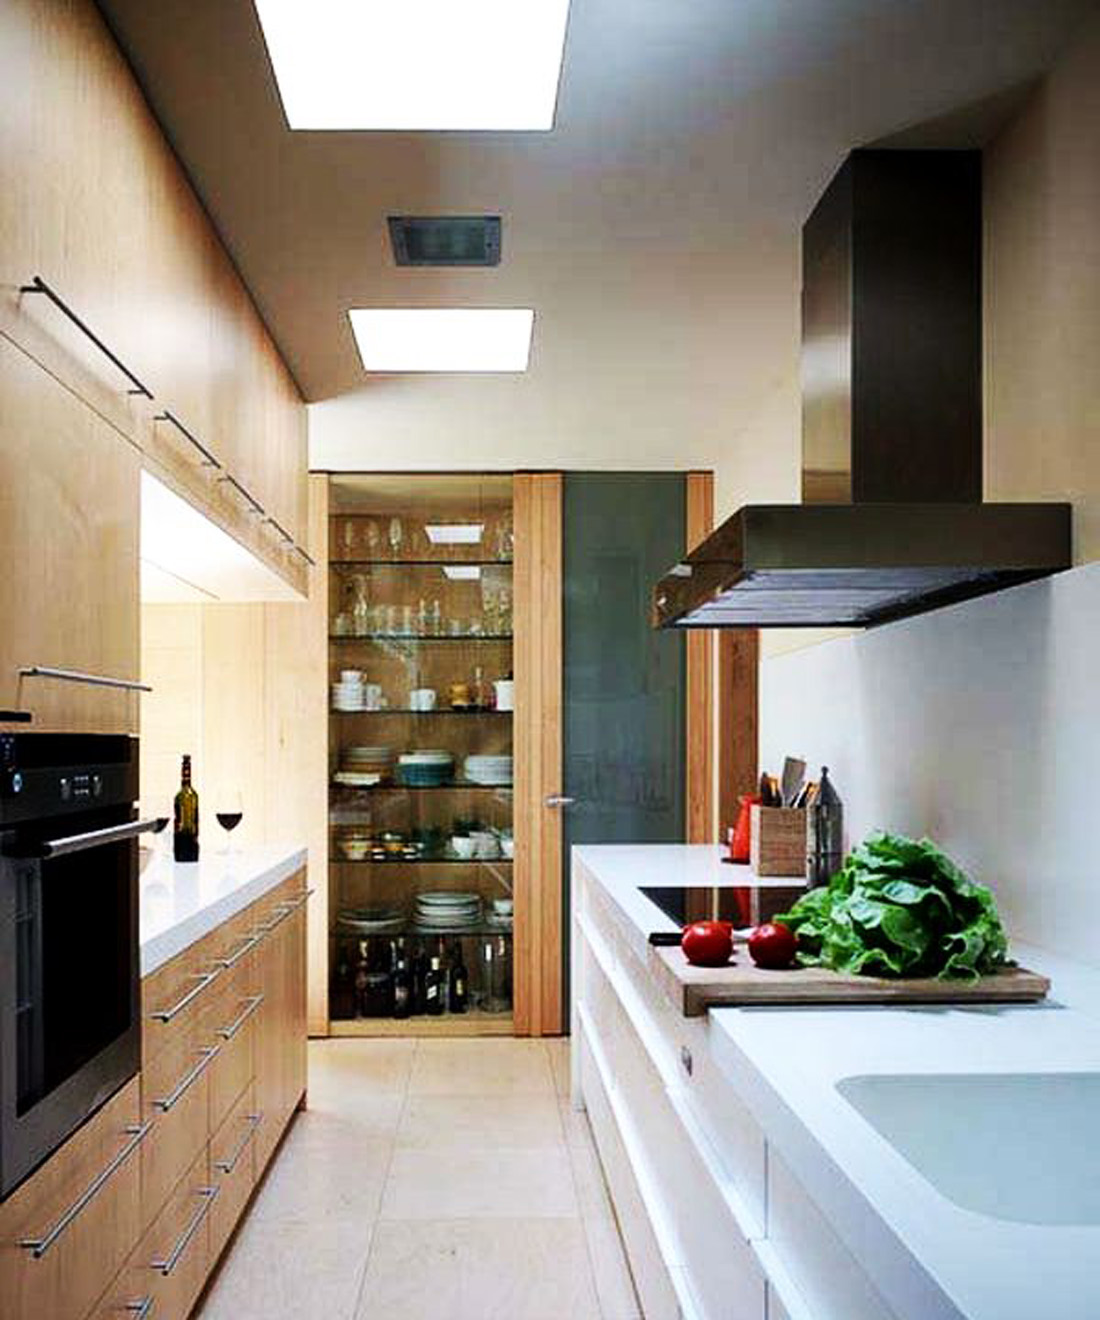 ideas for kitchen design photos kitchen design ideas for small spaces hawk 7405